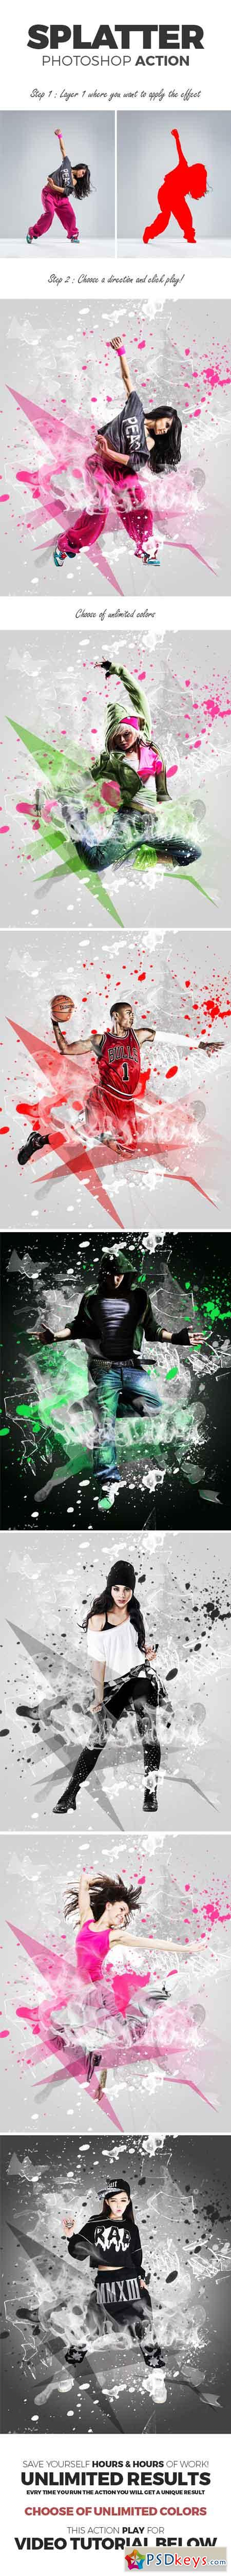 Splatter Photoshop Action 15573290